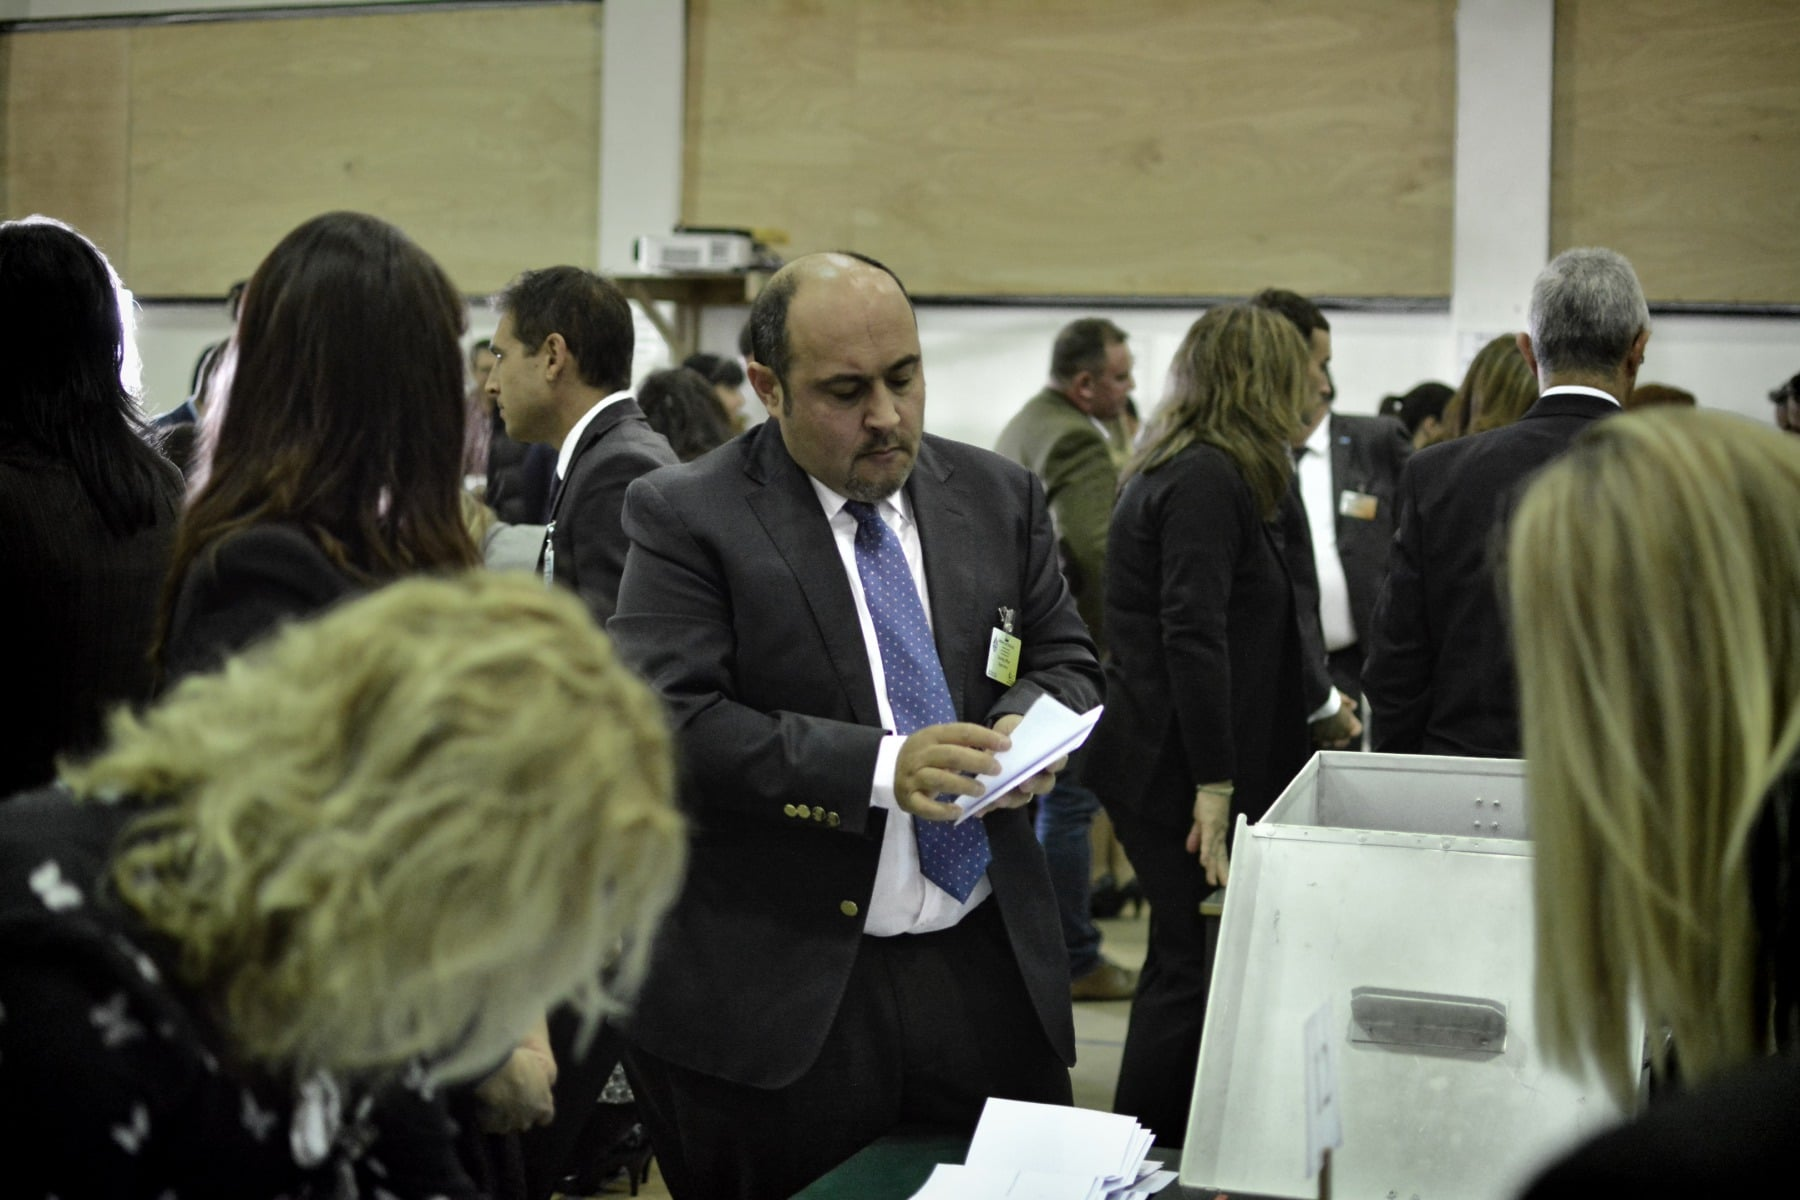 Gibraltar - 27th November 2015 - With security around John Macintosh Hall tightened, the first ballot box surprised everyone arriving dead on 10pm, the time polling stations were supposed to close their doors. A stream of ballot boxes then arrived as GBC announced the results of their exit poll putting the GSLP/Liberal Alliance ahead with 72%. As counting started by midnight candidates started to arrive at John Macintosh Hall where the count is taking place.One of the first candidates to arrive was John Cortes, followed by Edwin Reyes. Moments later Joseph Garcia, Gilbert Licudi, Albert Isola and Steven Linares arrived to a somewhat quite JHM as counting started.The verification count was overseen by agents of both parties, with the Governor Alison Macmilan also visiting JMH to oversee the protocols being followed, as is traditional during general elections in Gibraltar.John Macintosh Hall also saw tonight armed patrols present around the area, in keeping with the high security alert status presently experienced in Gibraltar. The security detail deployed included the presence of an inspector within the armed response detail, this being one of the few occassions in which a high ranking officer has been seen present as part of the unit when in public.